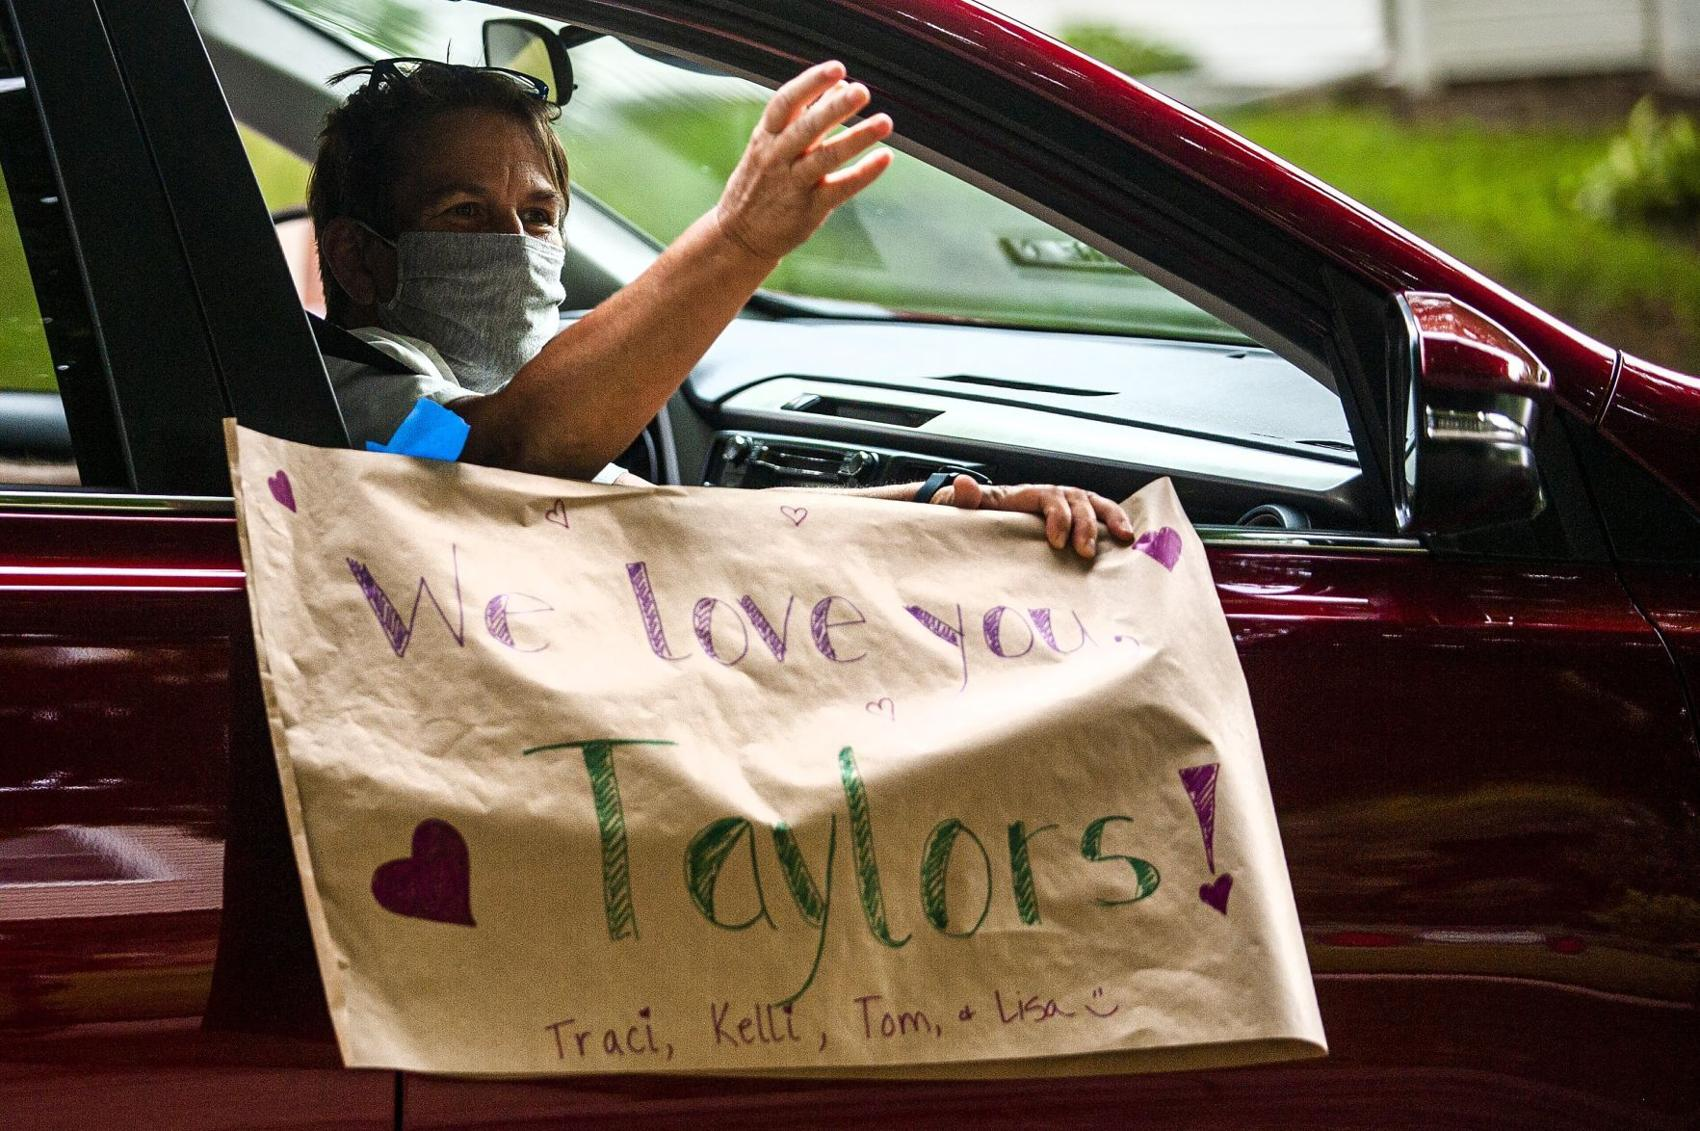 A participant shows love during a drive-by parade for Art and Camille Taylor on Friday, July 31, 2020, in Bloomington. (Credit: Lewis Marien, The Pantagraph)